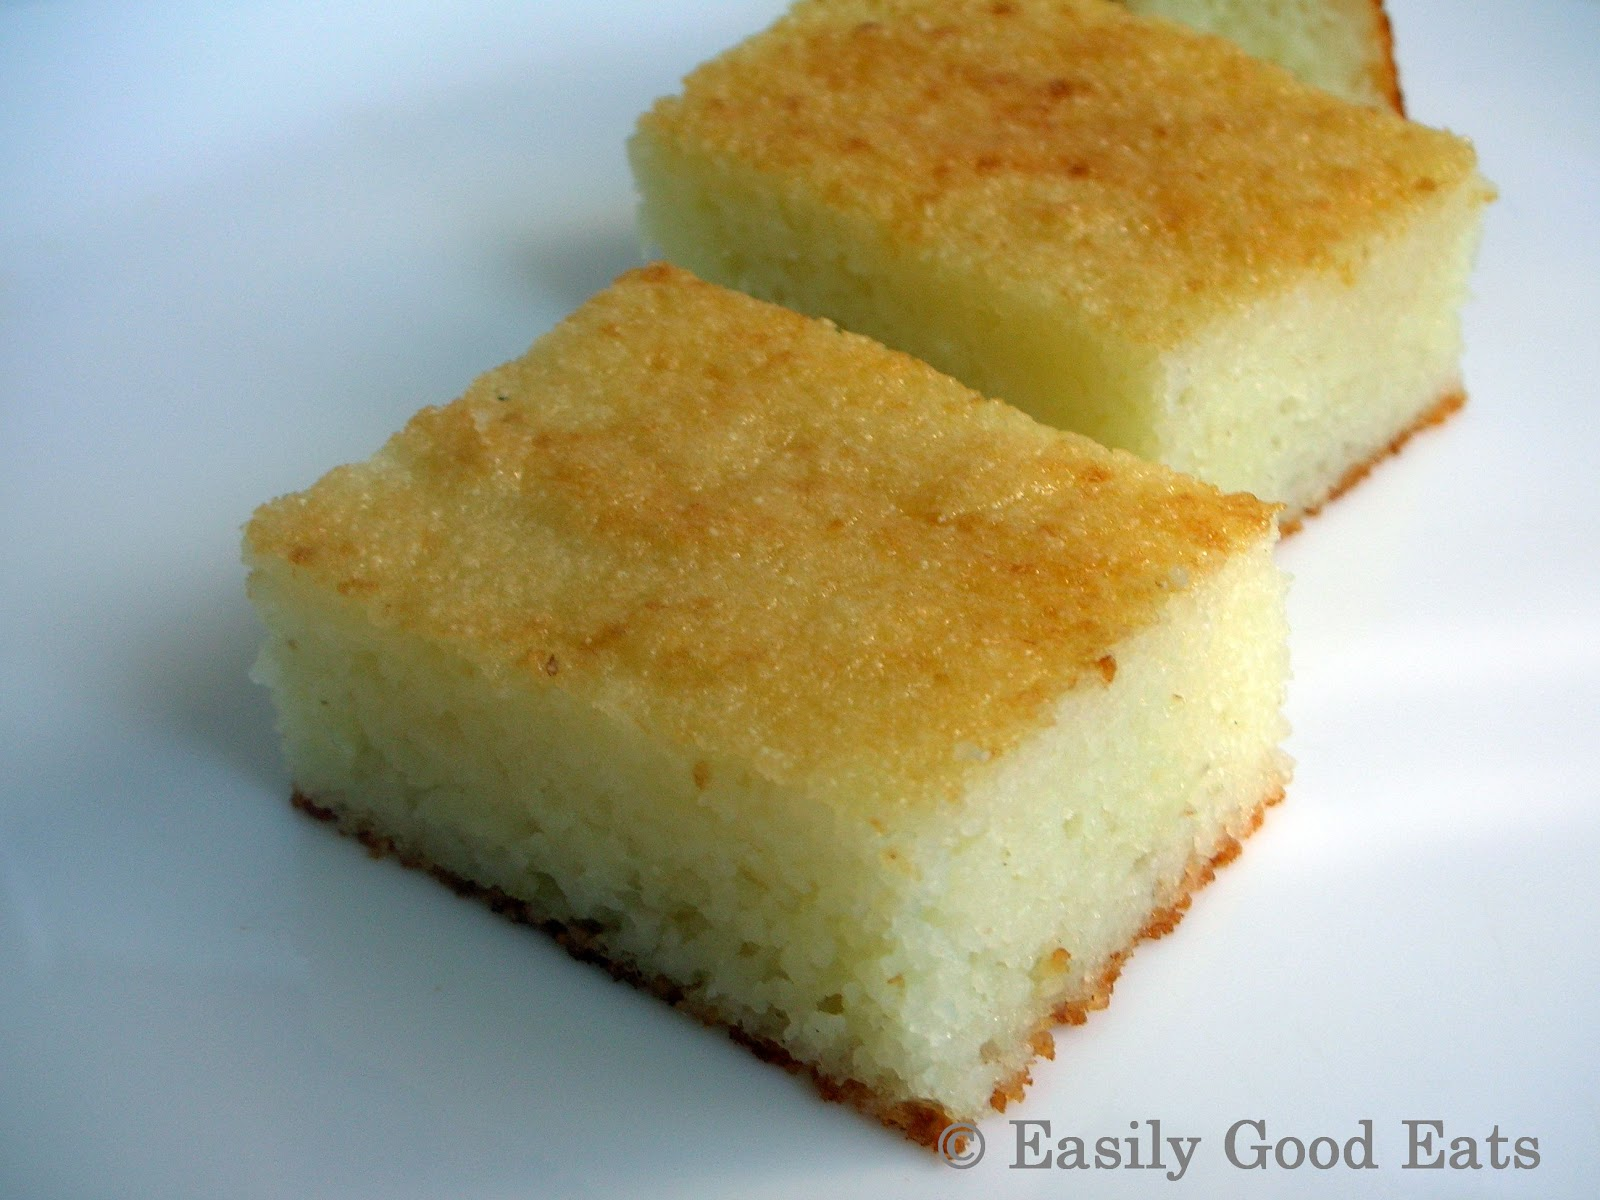 Recipe With Cake Mix Pudding Mix And Pineapple